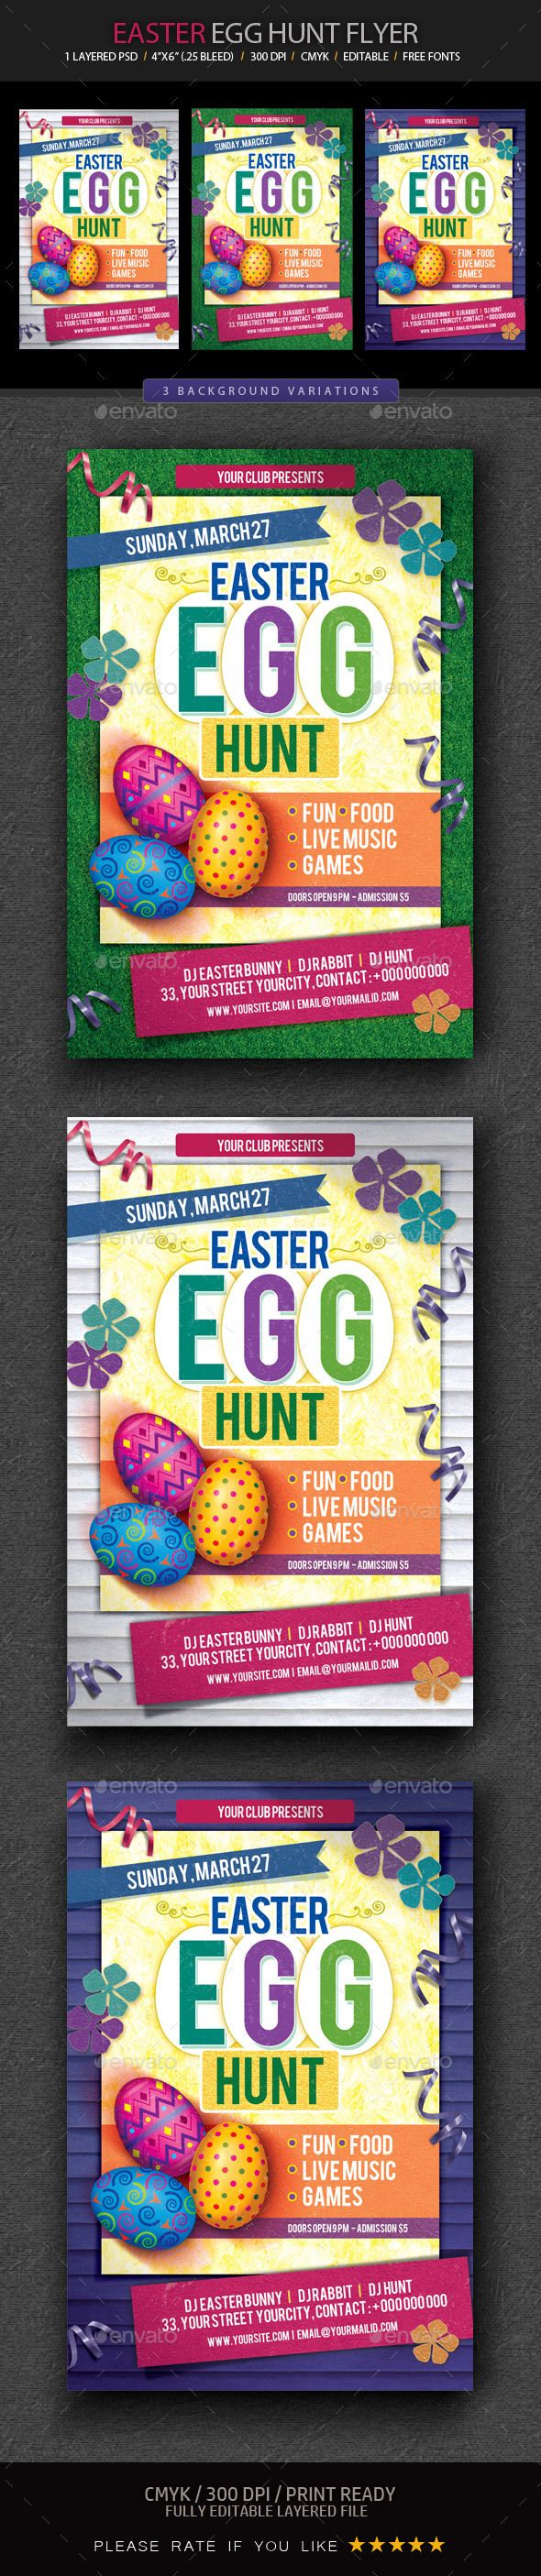 Easter Egg Hunt Flyer Template. Print-templates Flyers Events. To help find this celebration, color, colorful, design, Easter Egg Hunt Flyer, easter flyer, easter poster, egg hunt flyer, event, flyer, flyer template, holiday, invitation, print, psd, retro, spring, summer, texture, typography flyer, vintage, and white.